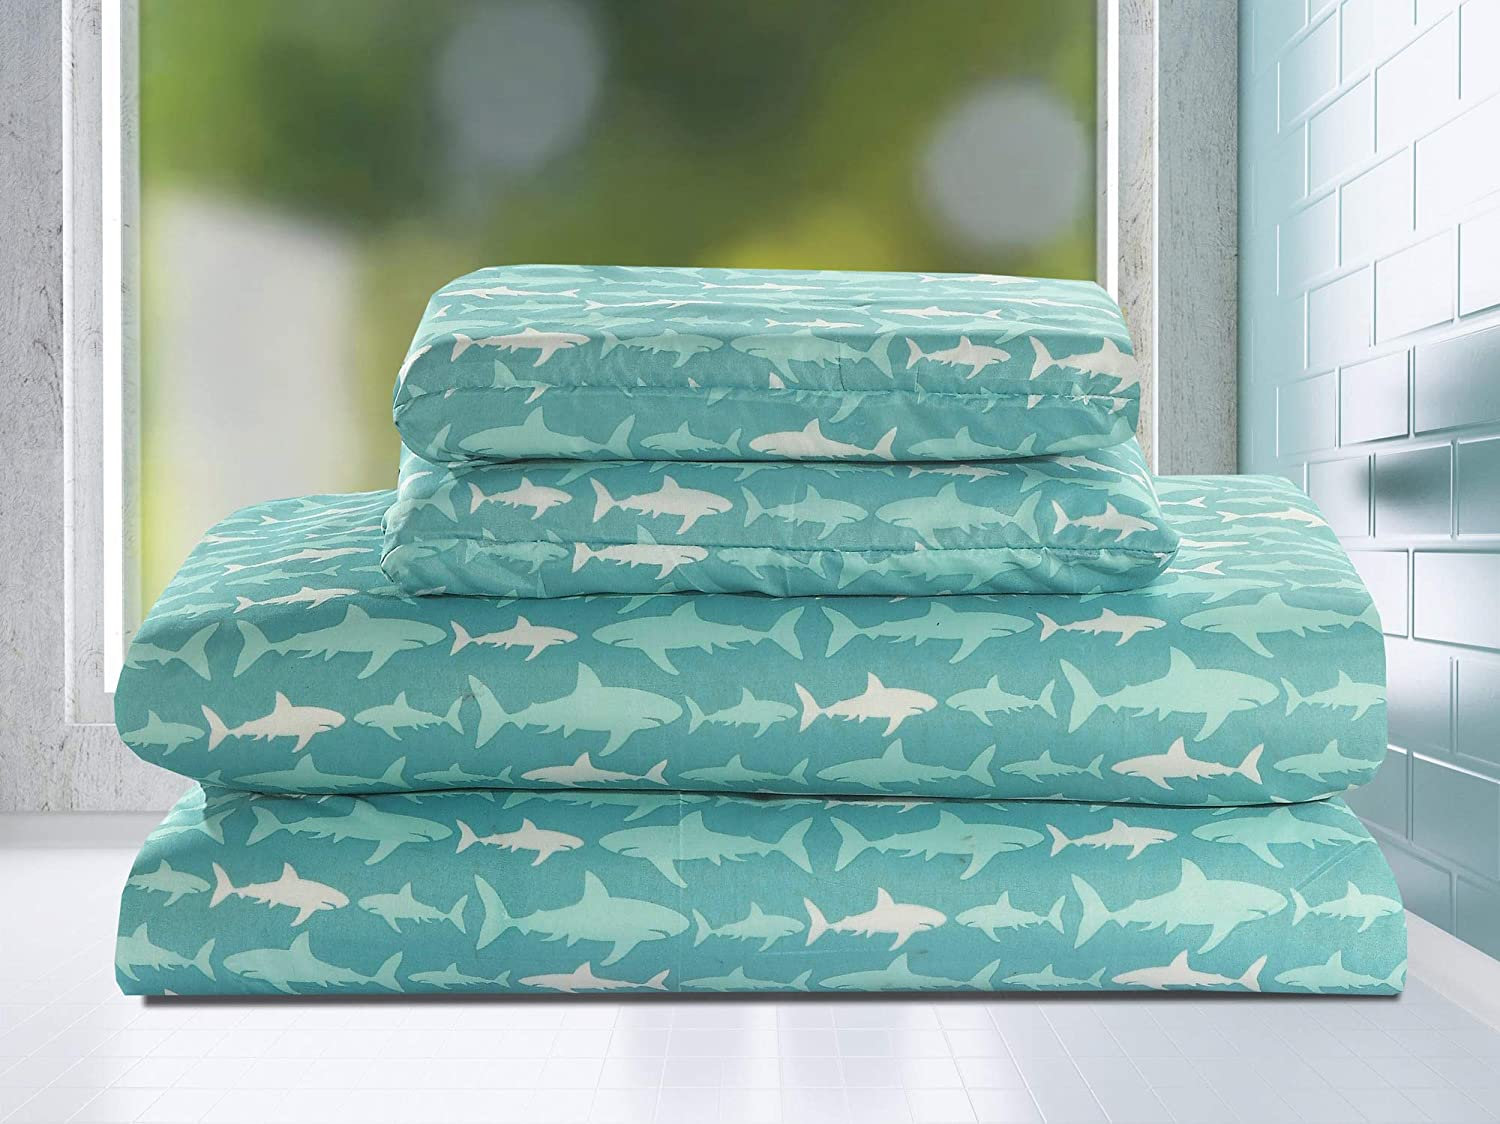 HowPlum Full 4 Piece Microfiber Sheet Set Shark Bedding Kids Teal Blue White